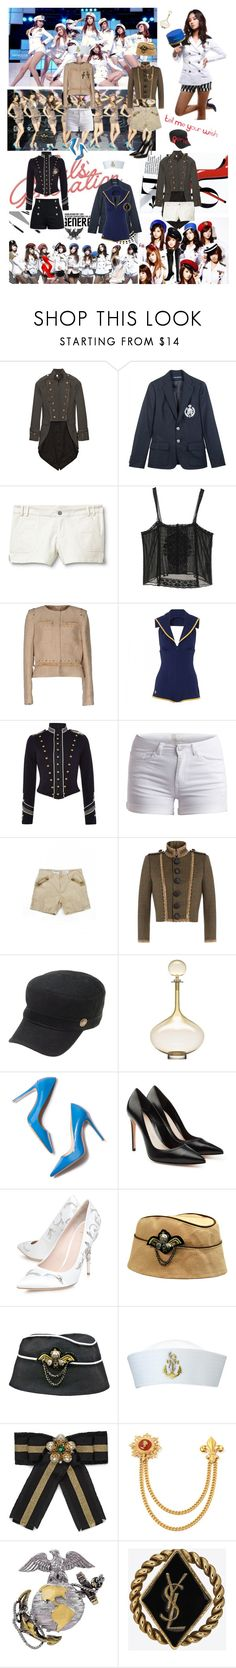 """""""SNSD; Genie Performance Outfits"""" by nahed-lakjaa ❤ liked on Polyvore featuring Bird by Juicy Couture, Ralph Lauren, Quiksilver, TAXI, Jill Stuart, Chloé, LUCY IN DISGUISE, Denim & Supply by Ralph Lauren, Pieces and Zadig & Voltaire"""